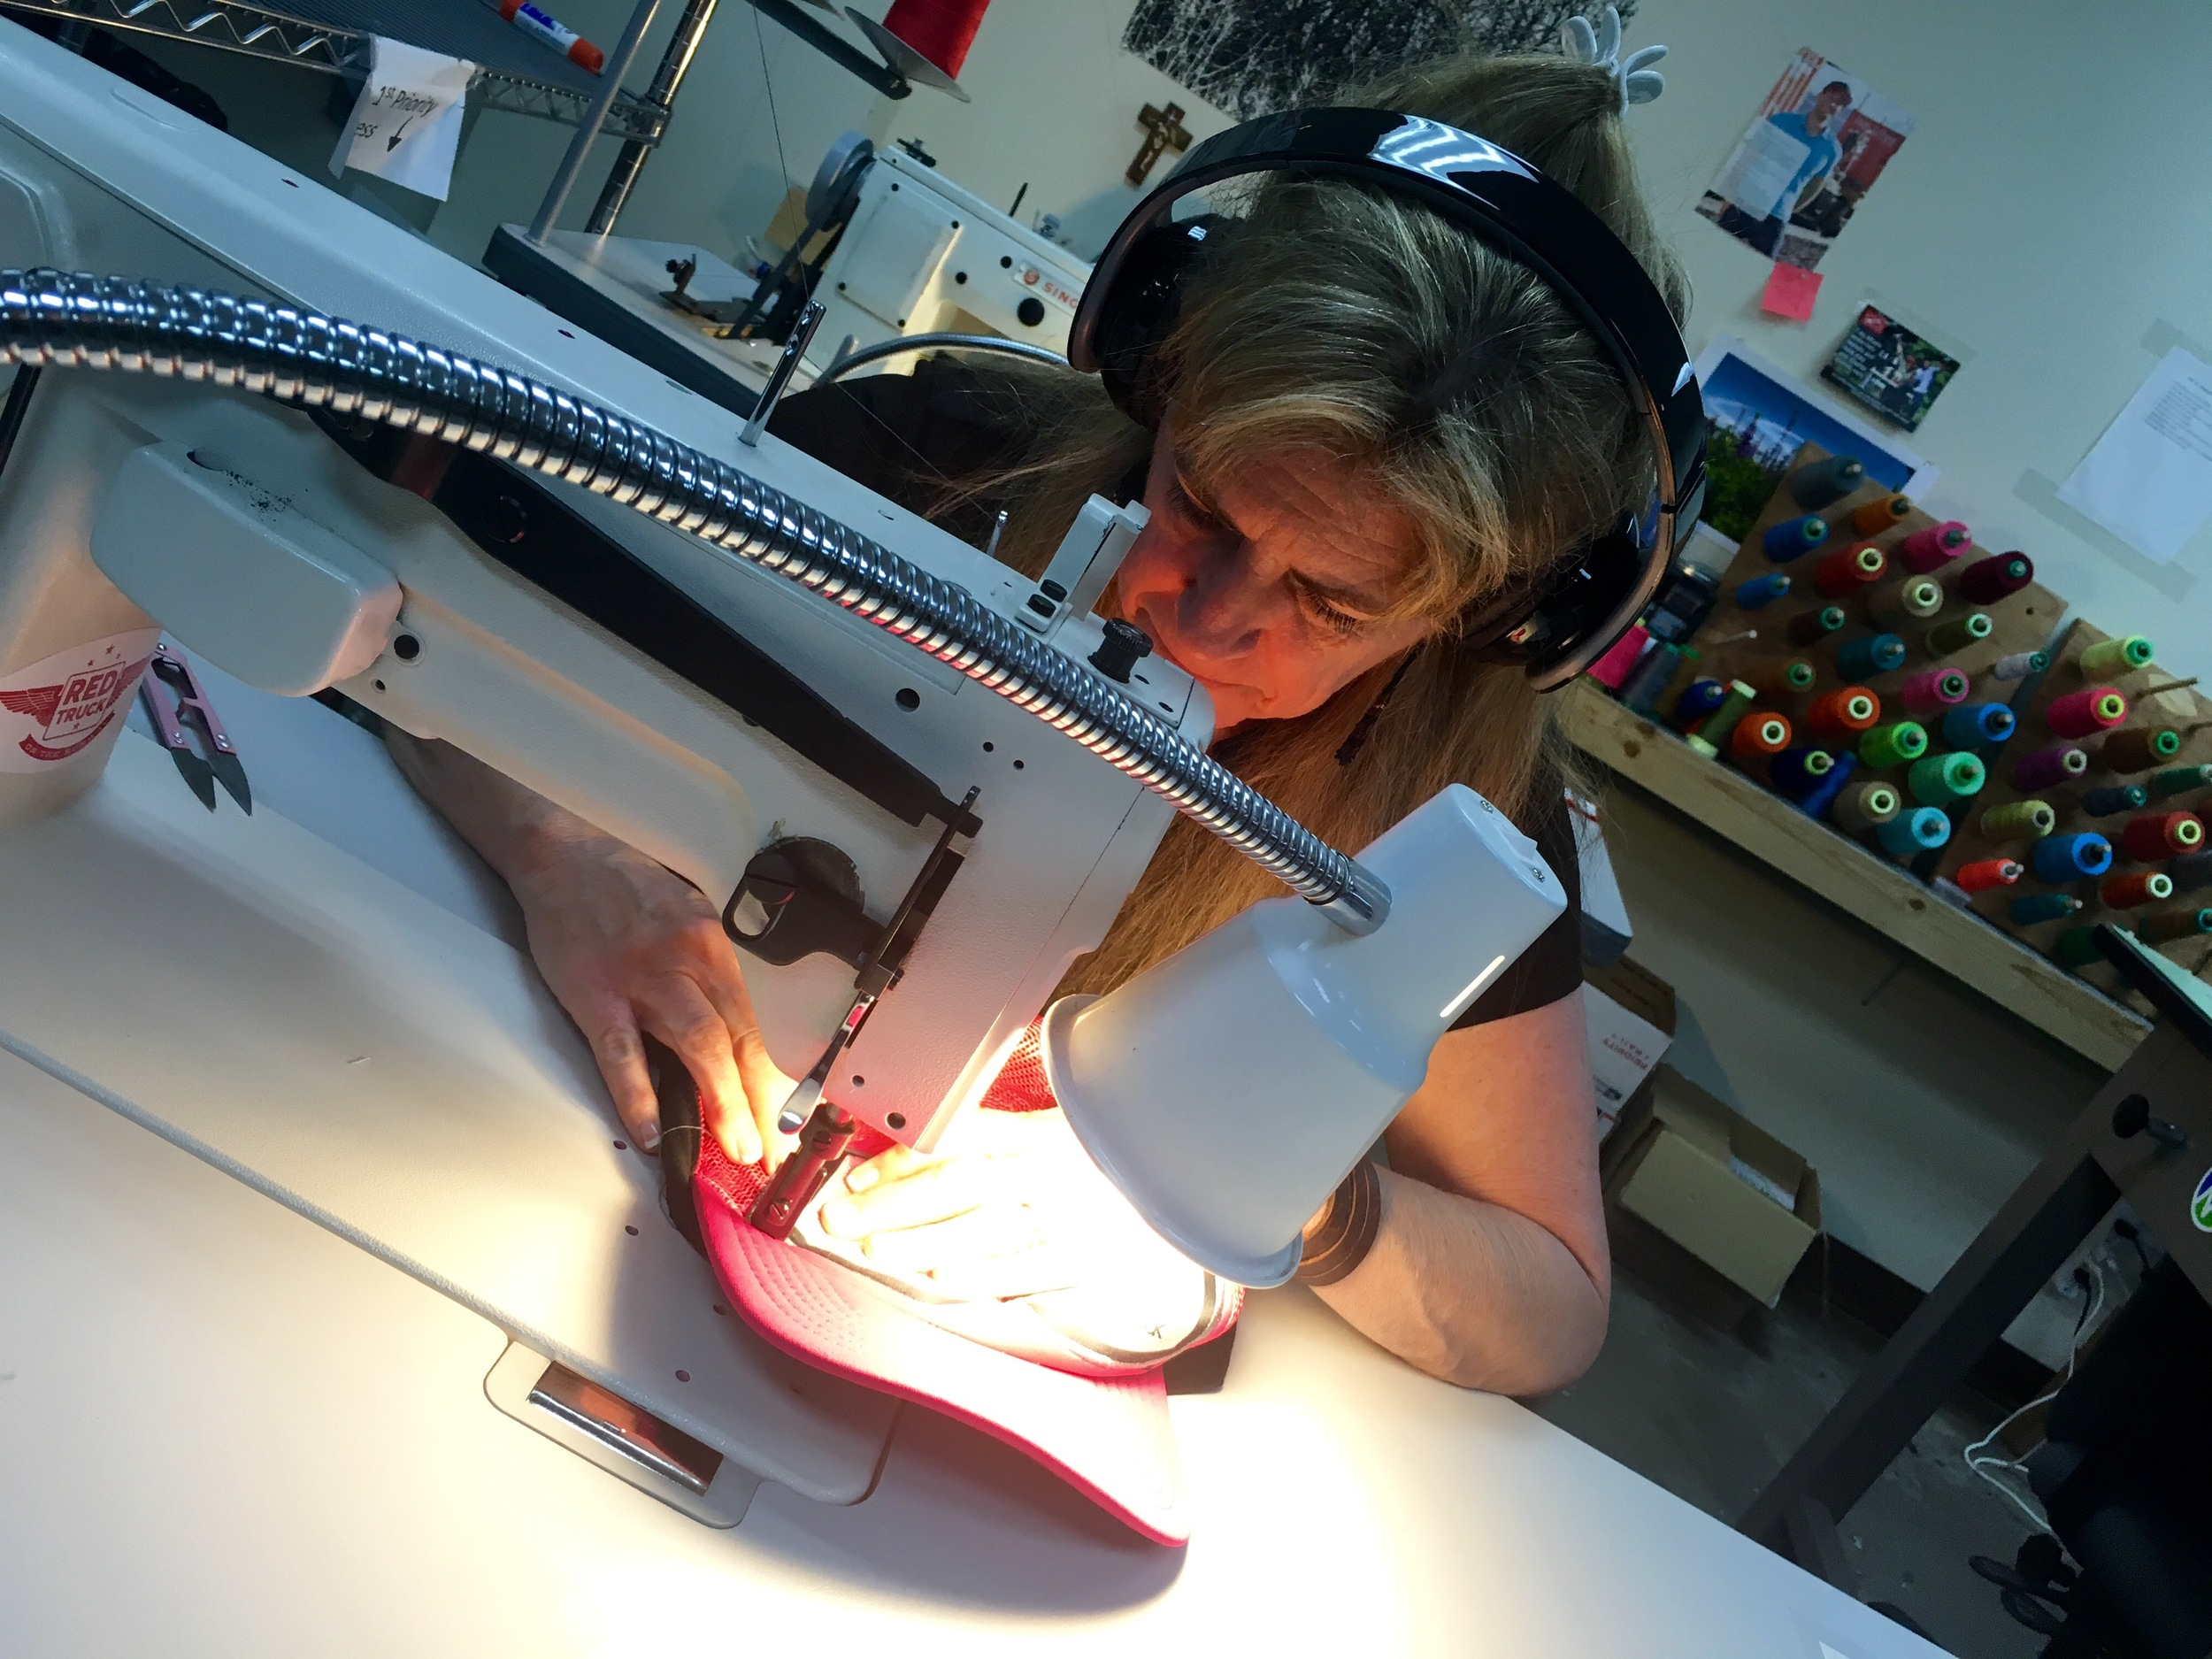 All hats are designed and sewn in Truckee, California, just outside Lake Tahoe.